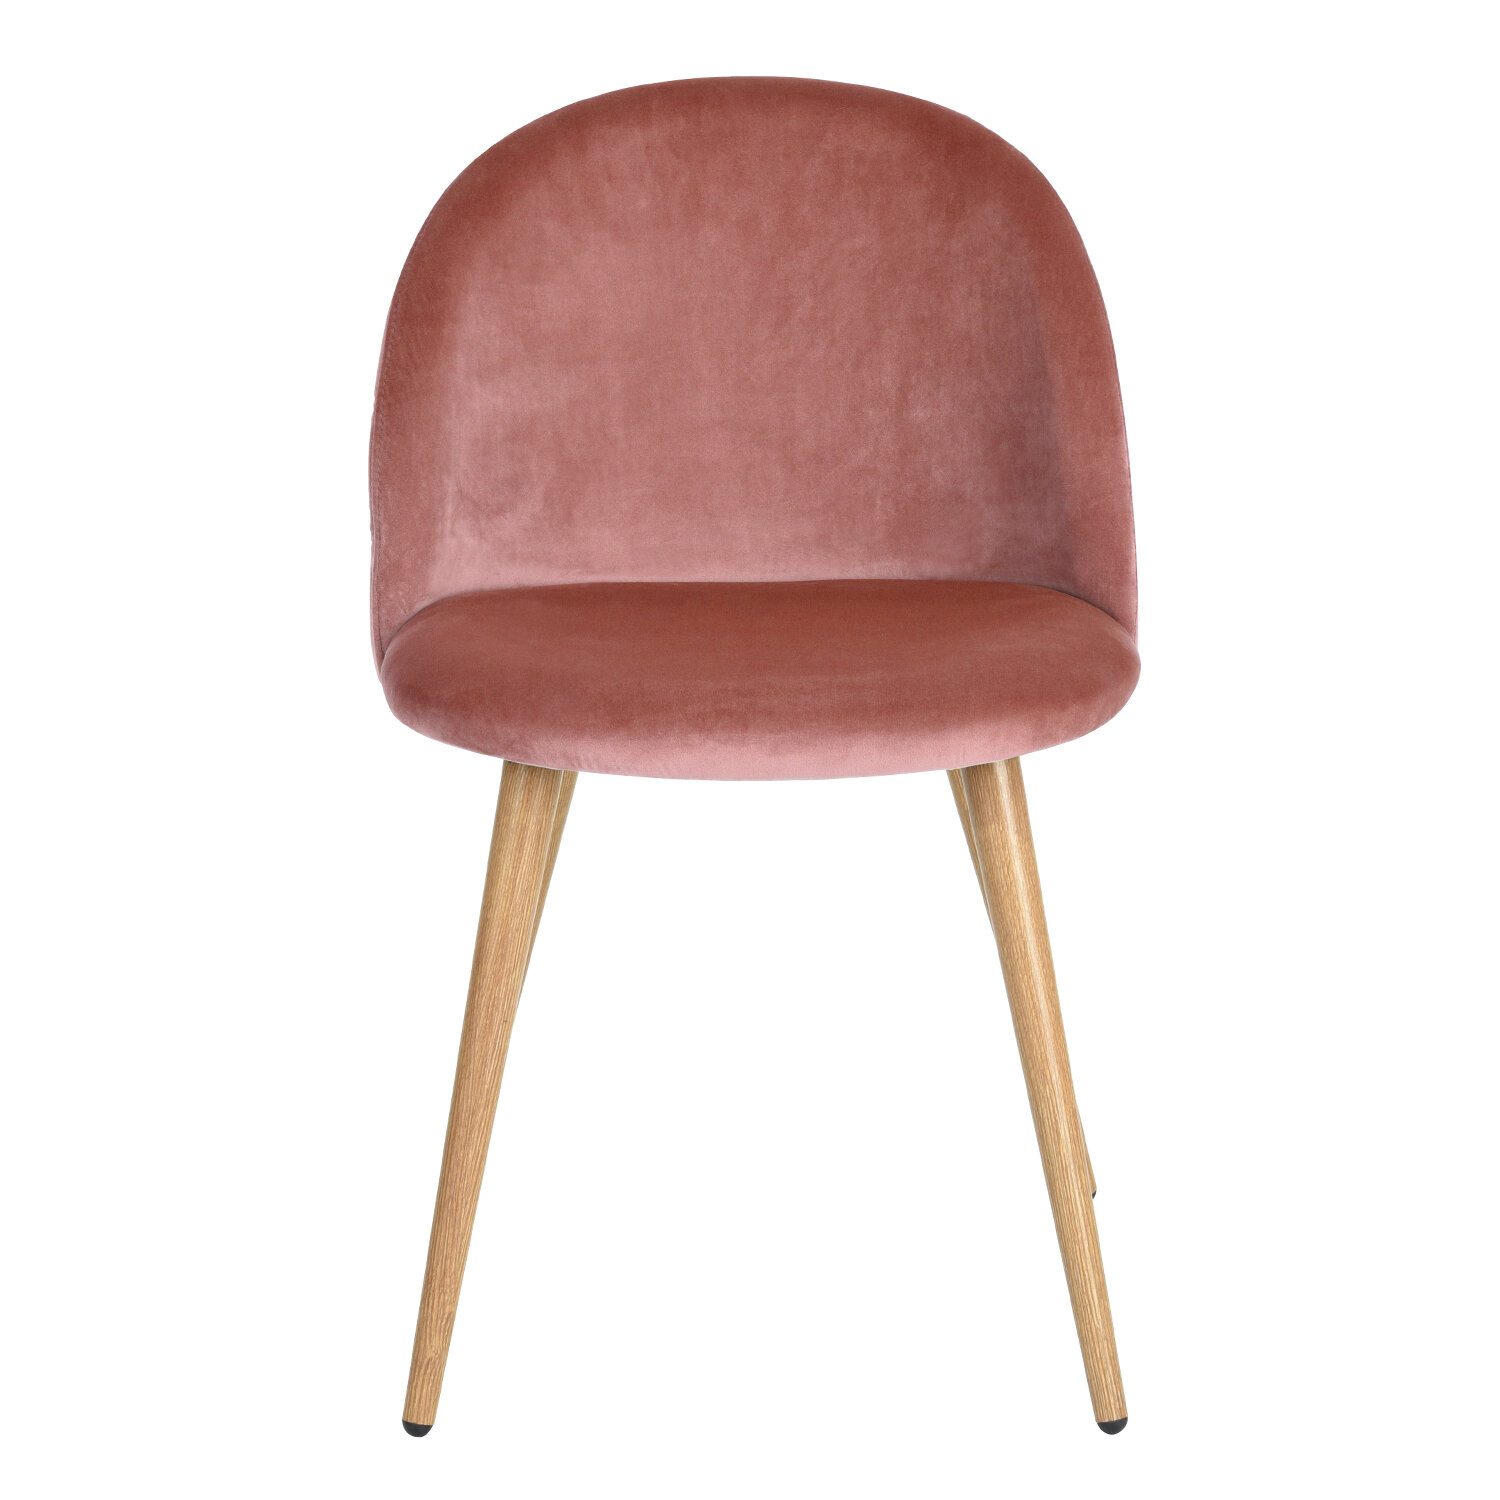 Brilliant Witherspoon Side Chair Beatyapartments Chair Design Images Beatyapartmentscom